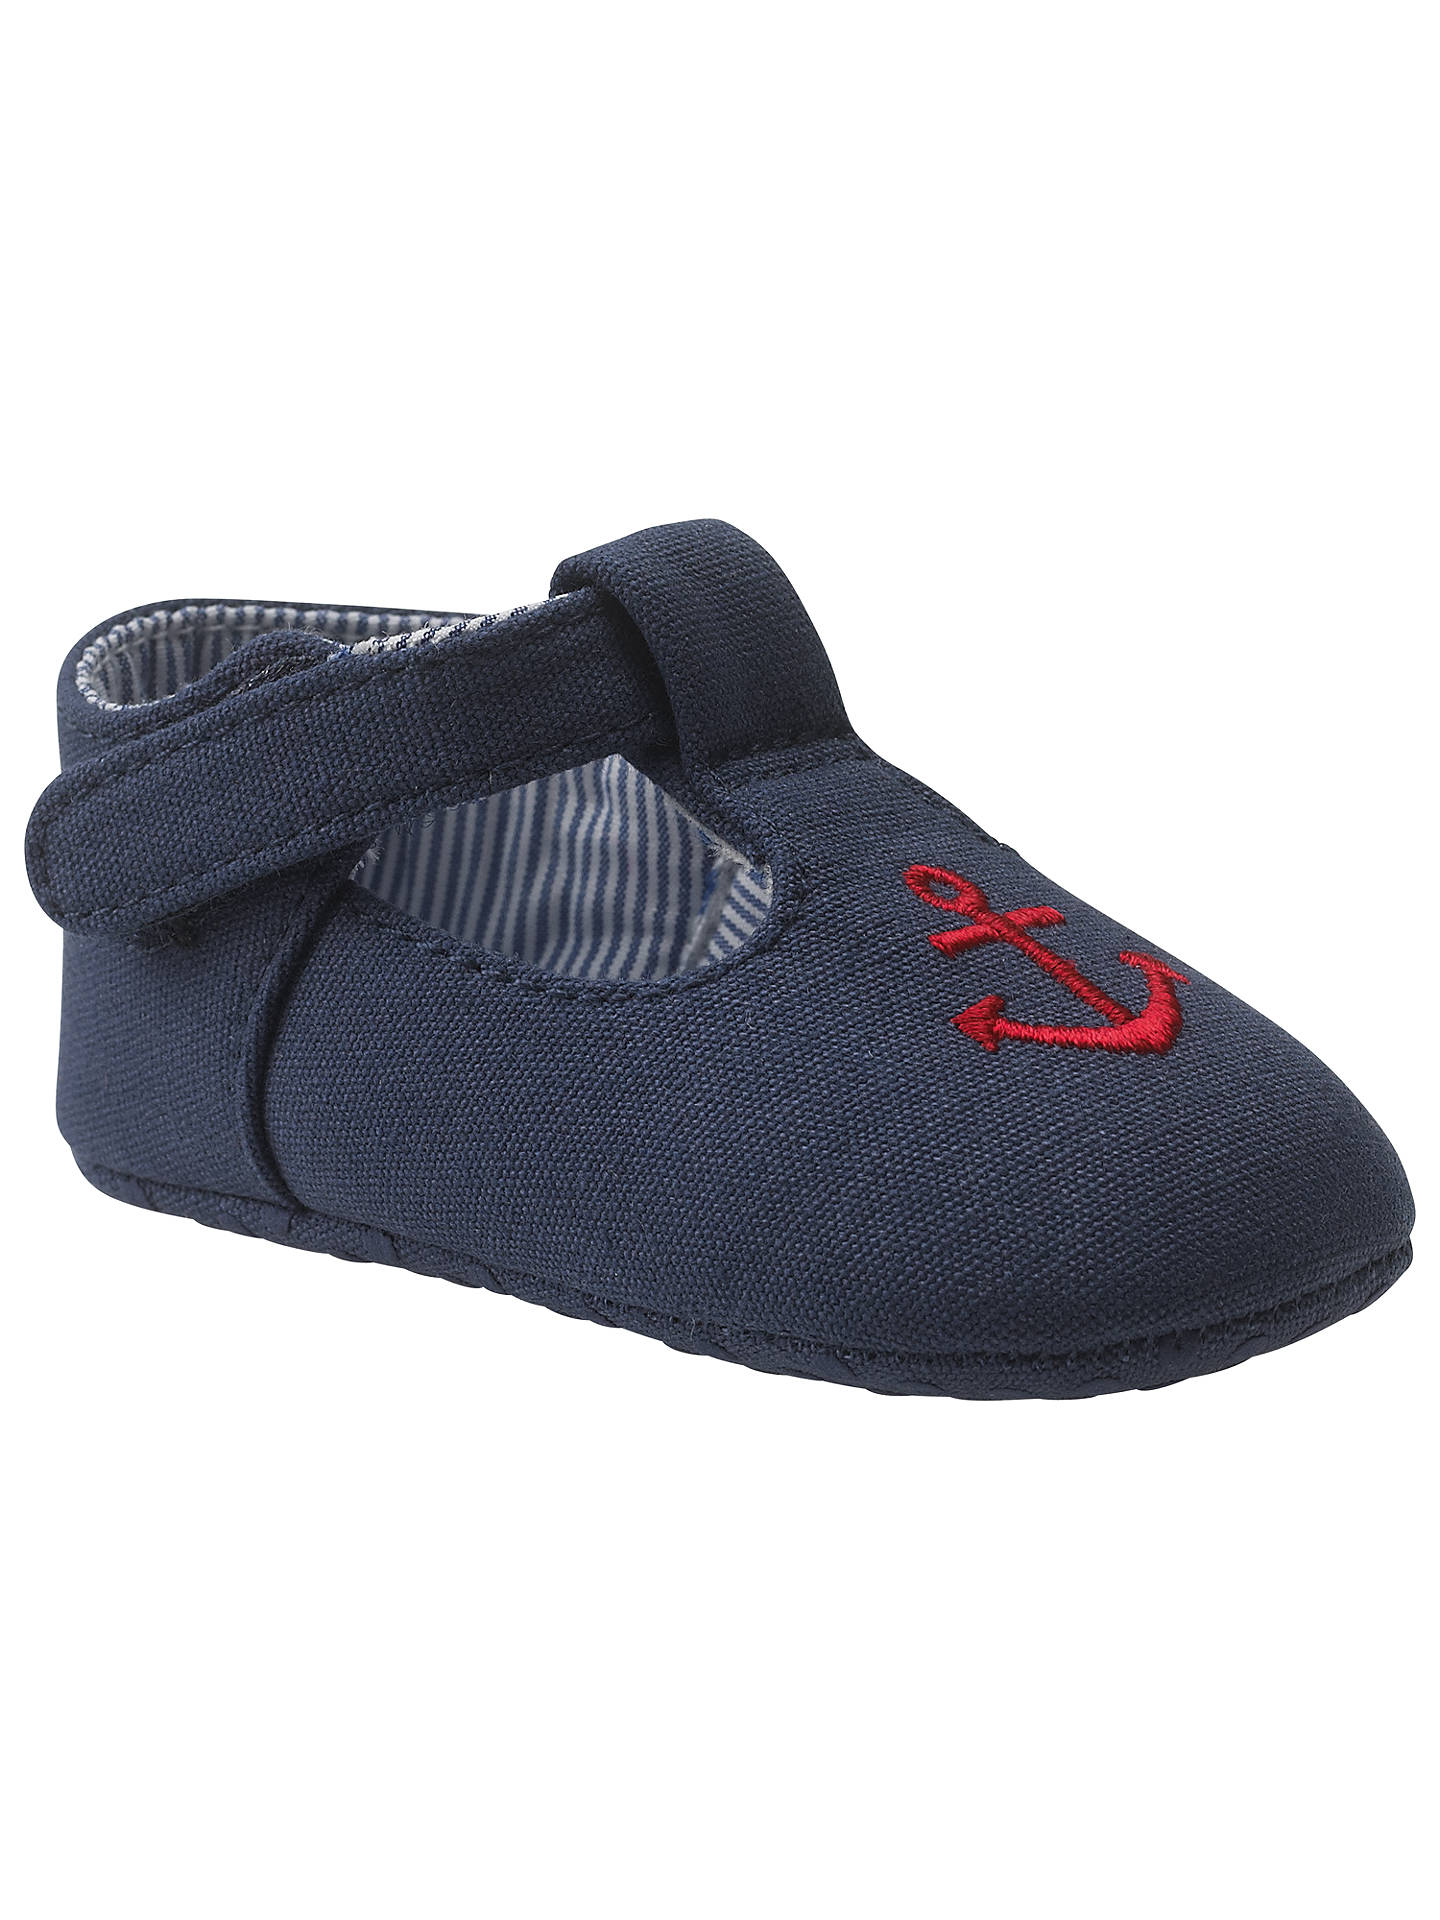 Buy John Lewis Anchor T-Bar Booties, Navy, 0-3 months Online at johnlewis.com